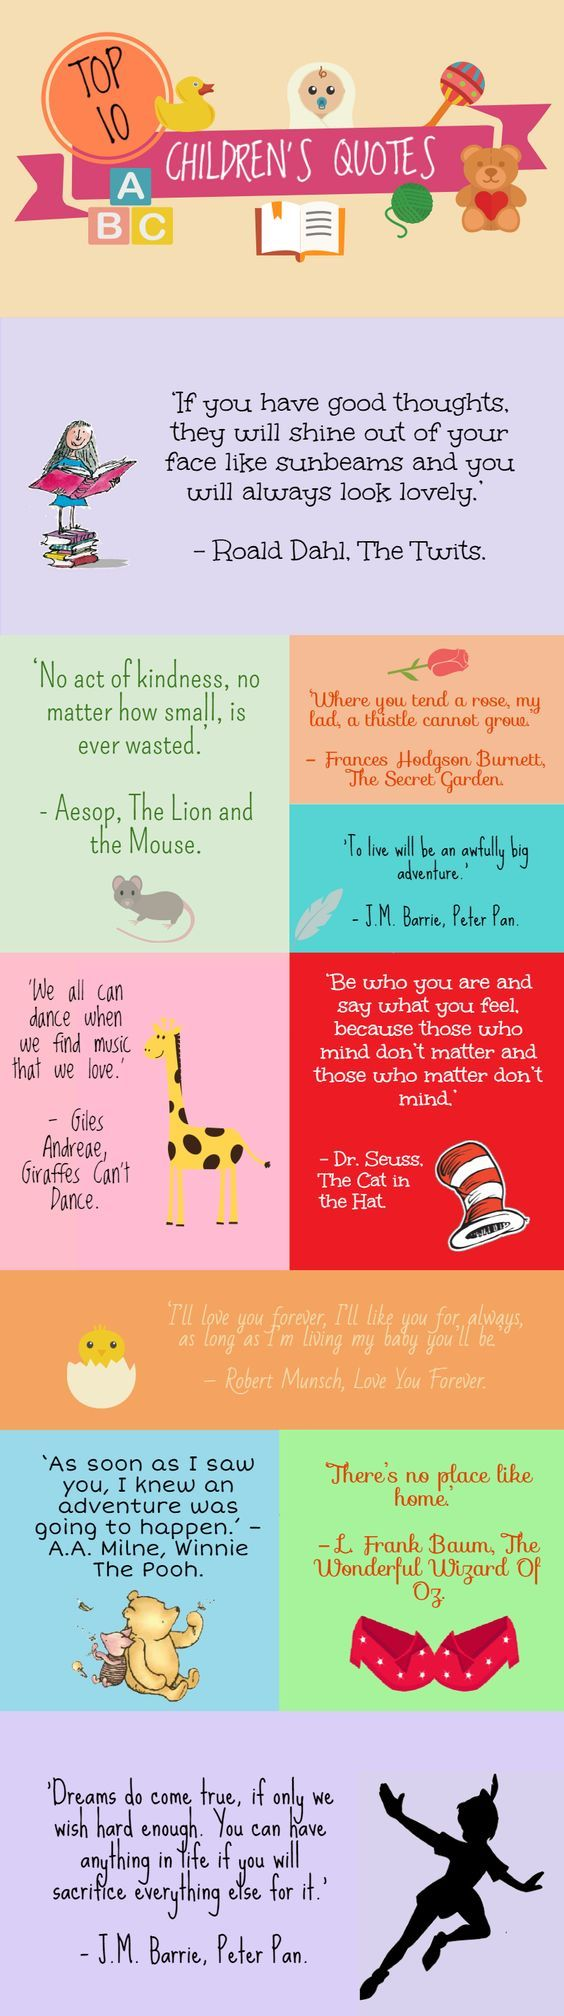 Top 10 Quotes from Classic Children's Books  http://www.iconwallstickers.co.uk/blog/childrens-wallstickers/: